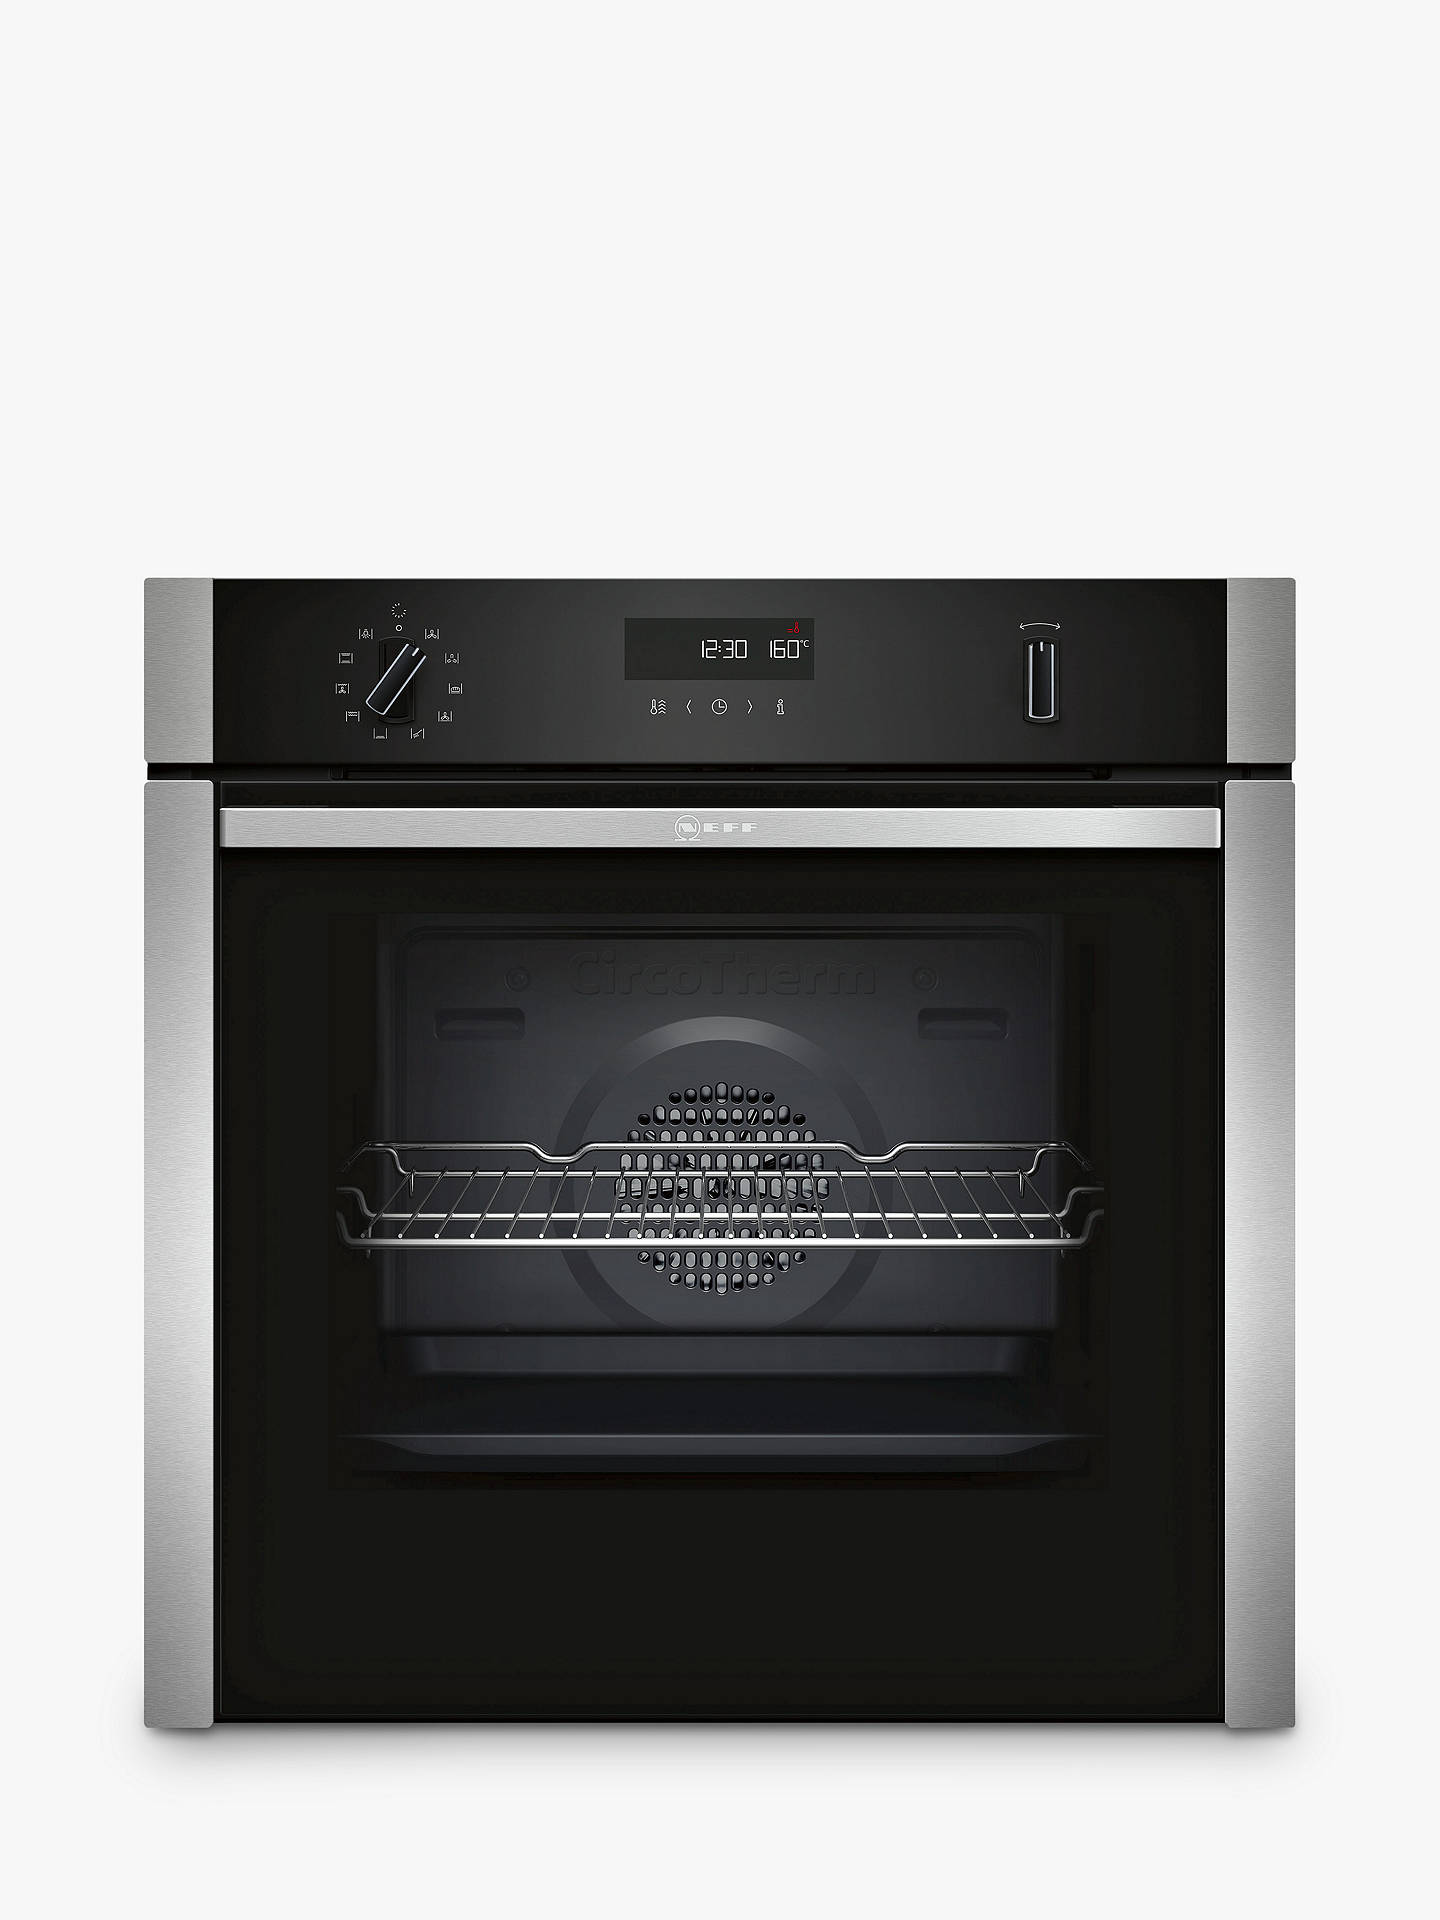 Neff B6ach7hn0b Slide And Hide Pyrolytic Built In Single Oven Stainless Steel